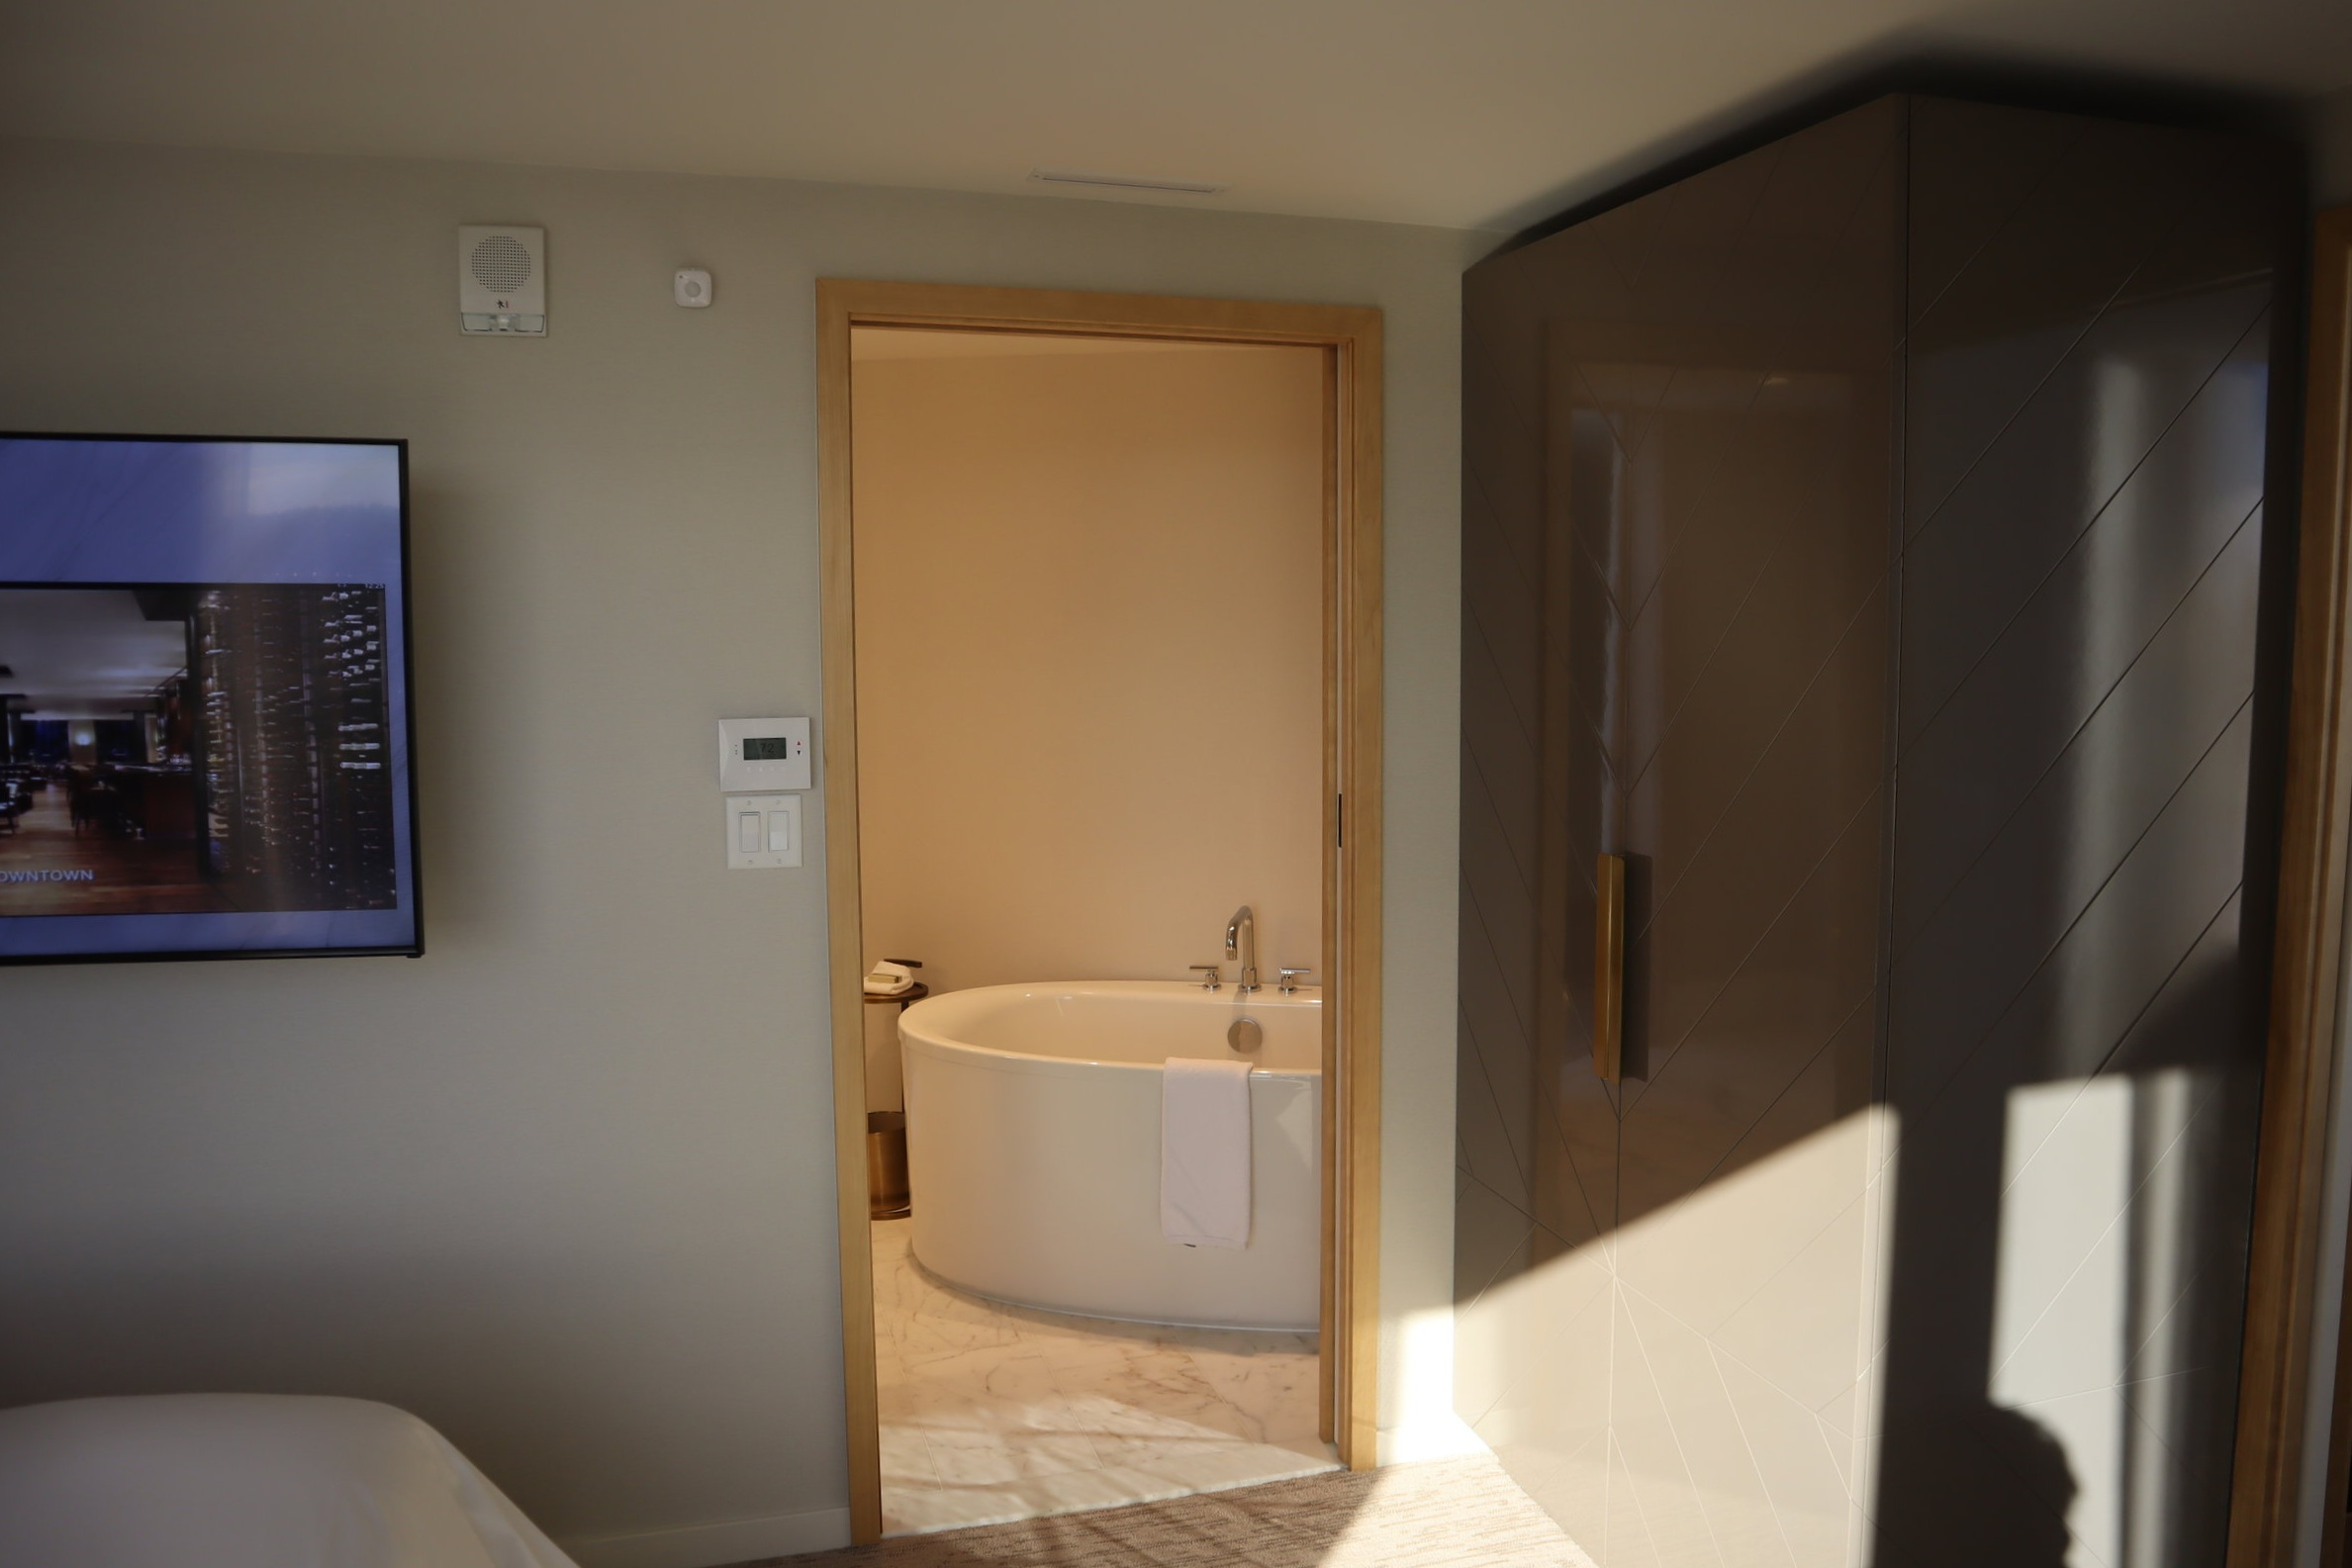 JW Marriott Parq Vancouver – Armoire and door to bathroom